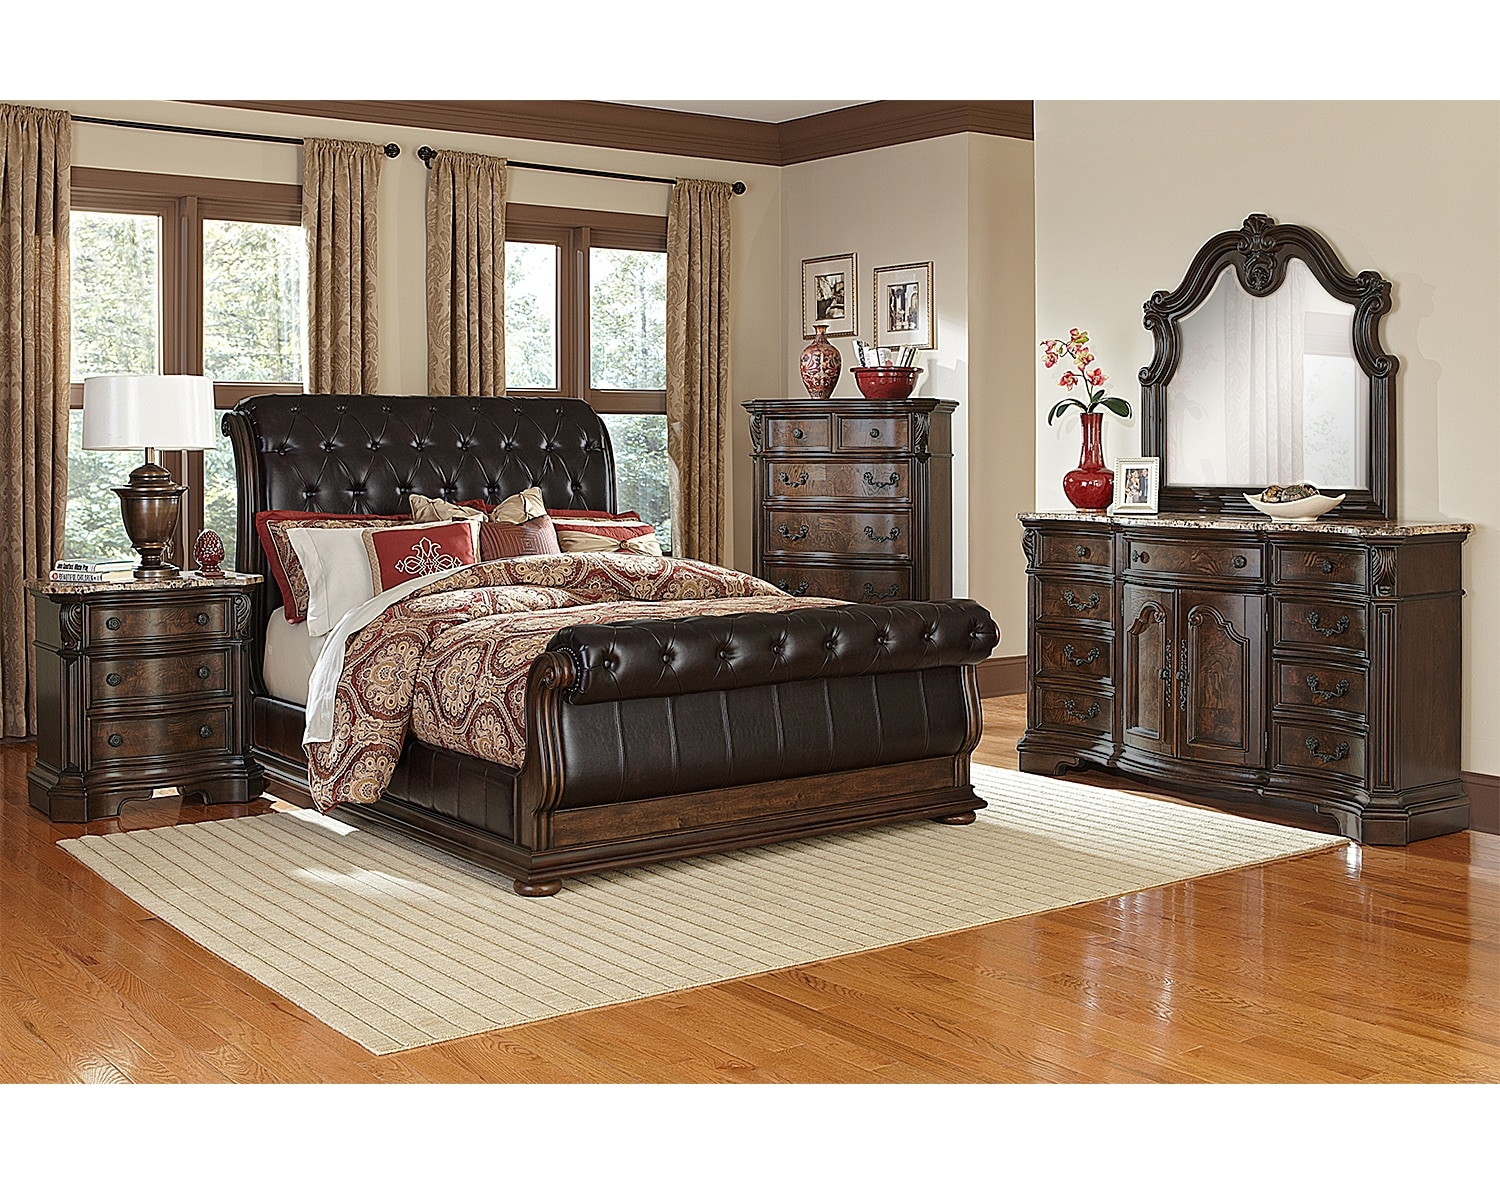 american signature bedroom furniture the monticello sleigh bedroom collection pecan 14013